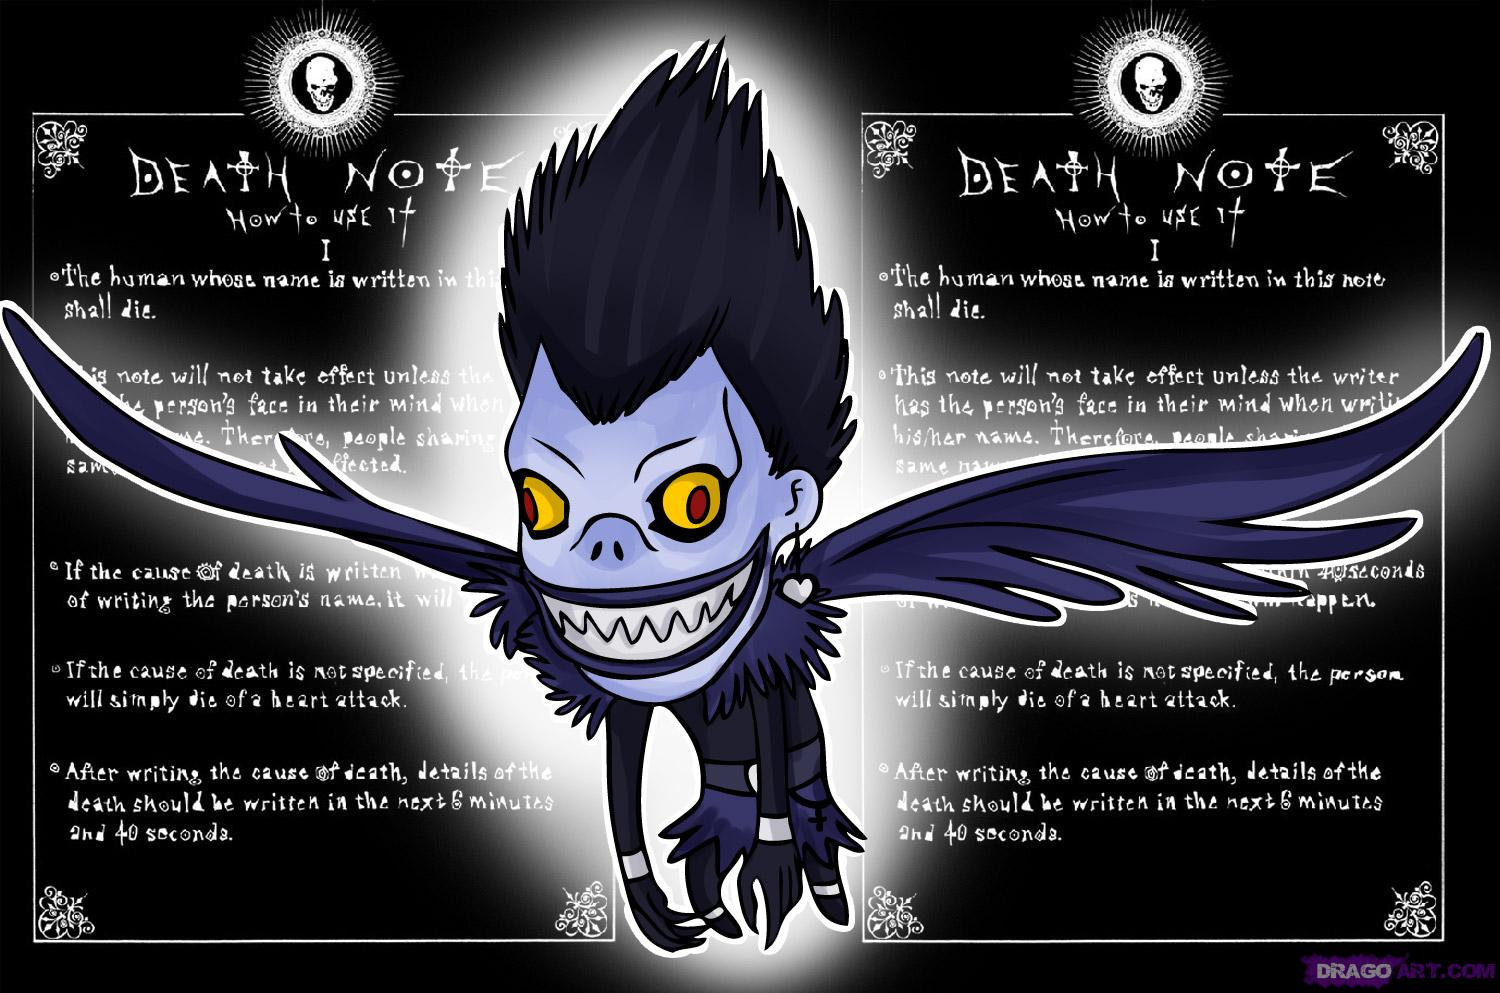 http://2.bp.blogspot.com/-Oq-tzkqxbiA/UD--6yrYdhI/AAAAAAAAAk0/Q3ohs7nLKMA/s1600/how-to-draw-chibi-ryuk-from-death-note.jpg